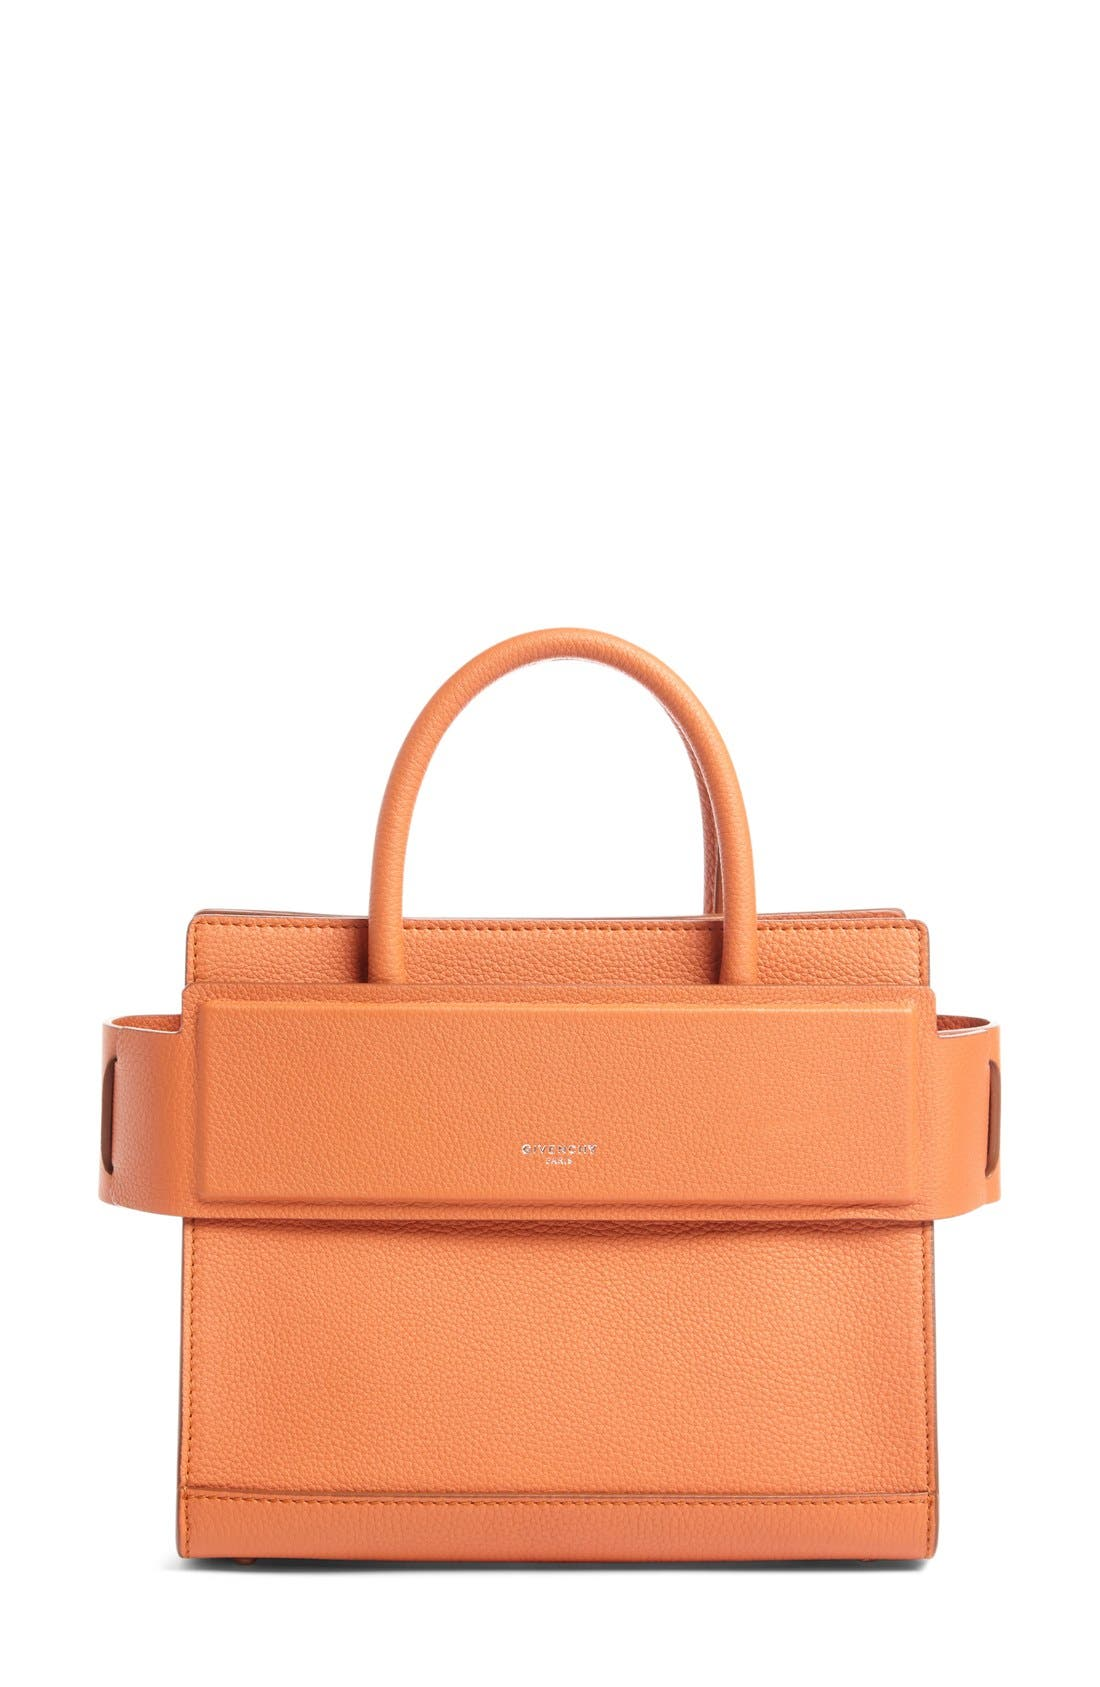 Alternate Image 1 Selected - Givenchy Mini Horizon Grained Calfskin Leather Tote